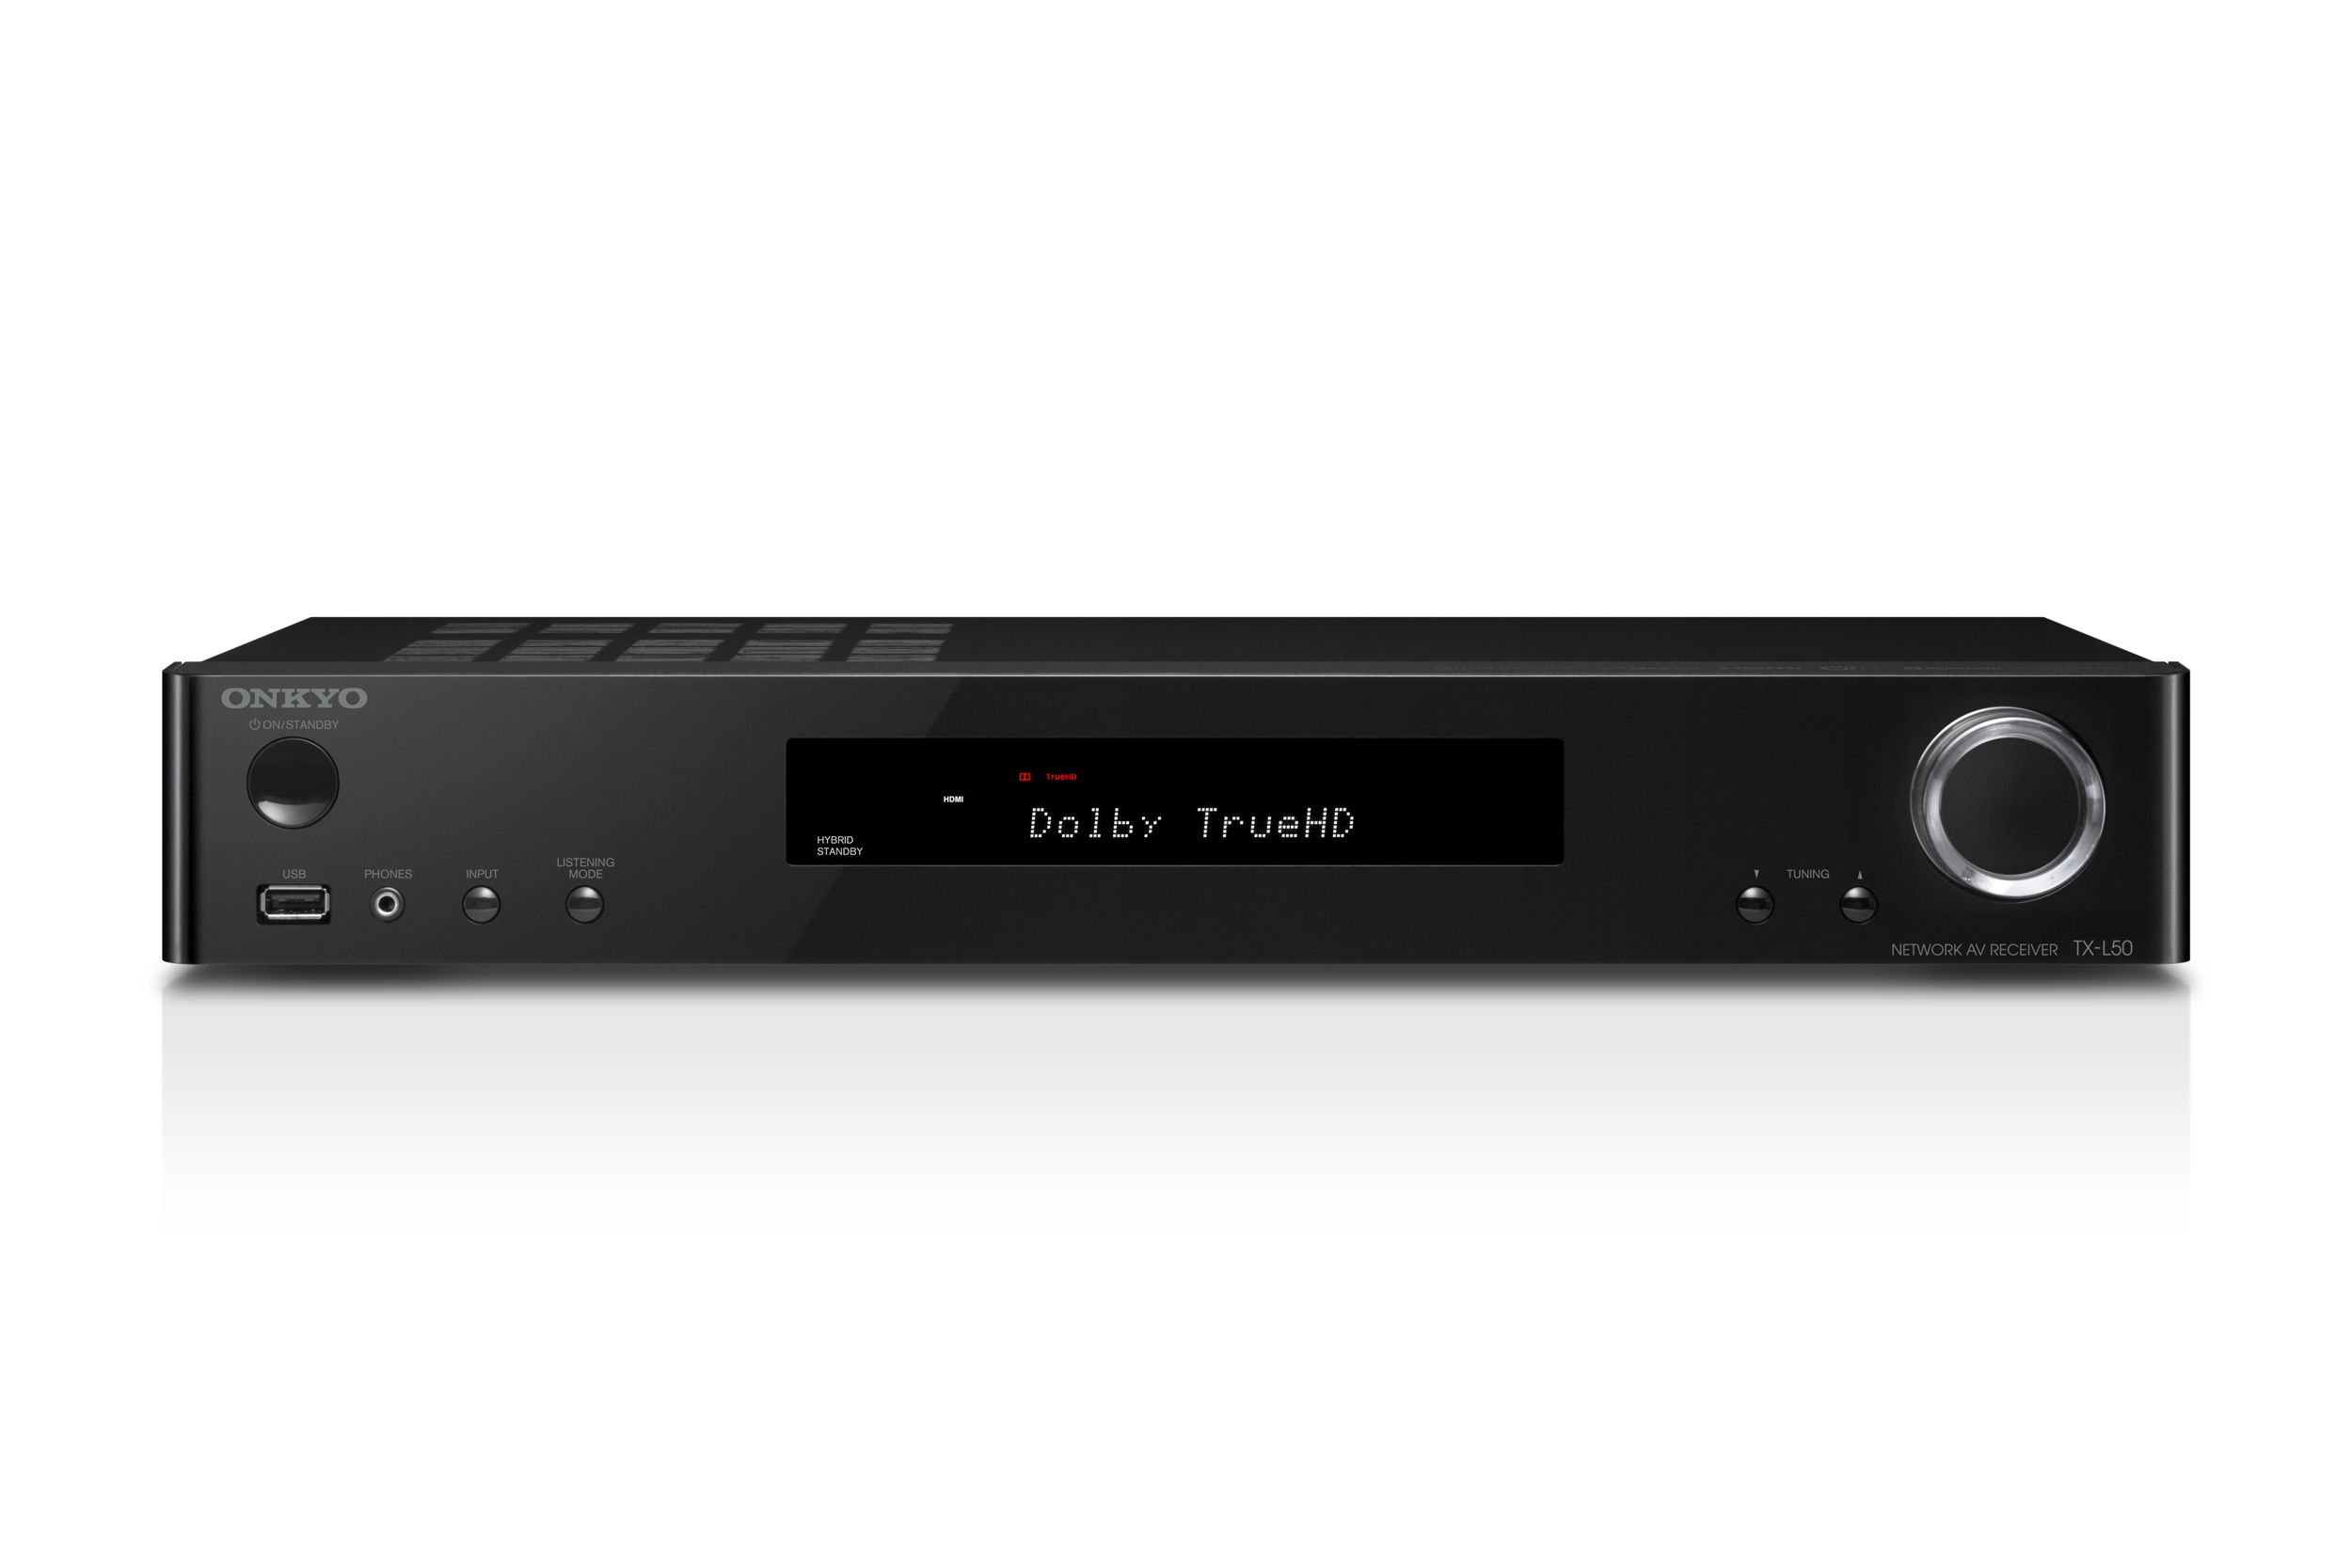 TX-L50-B, AV-RECEIVER, black